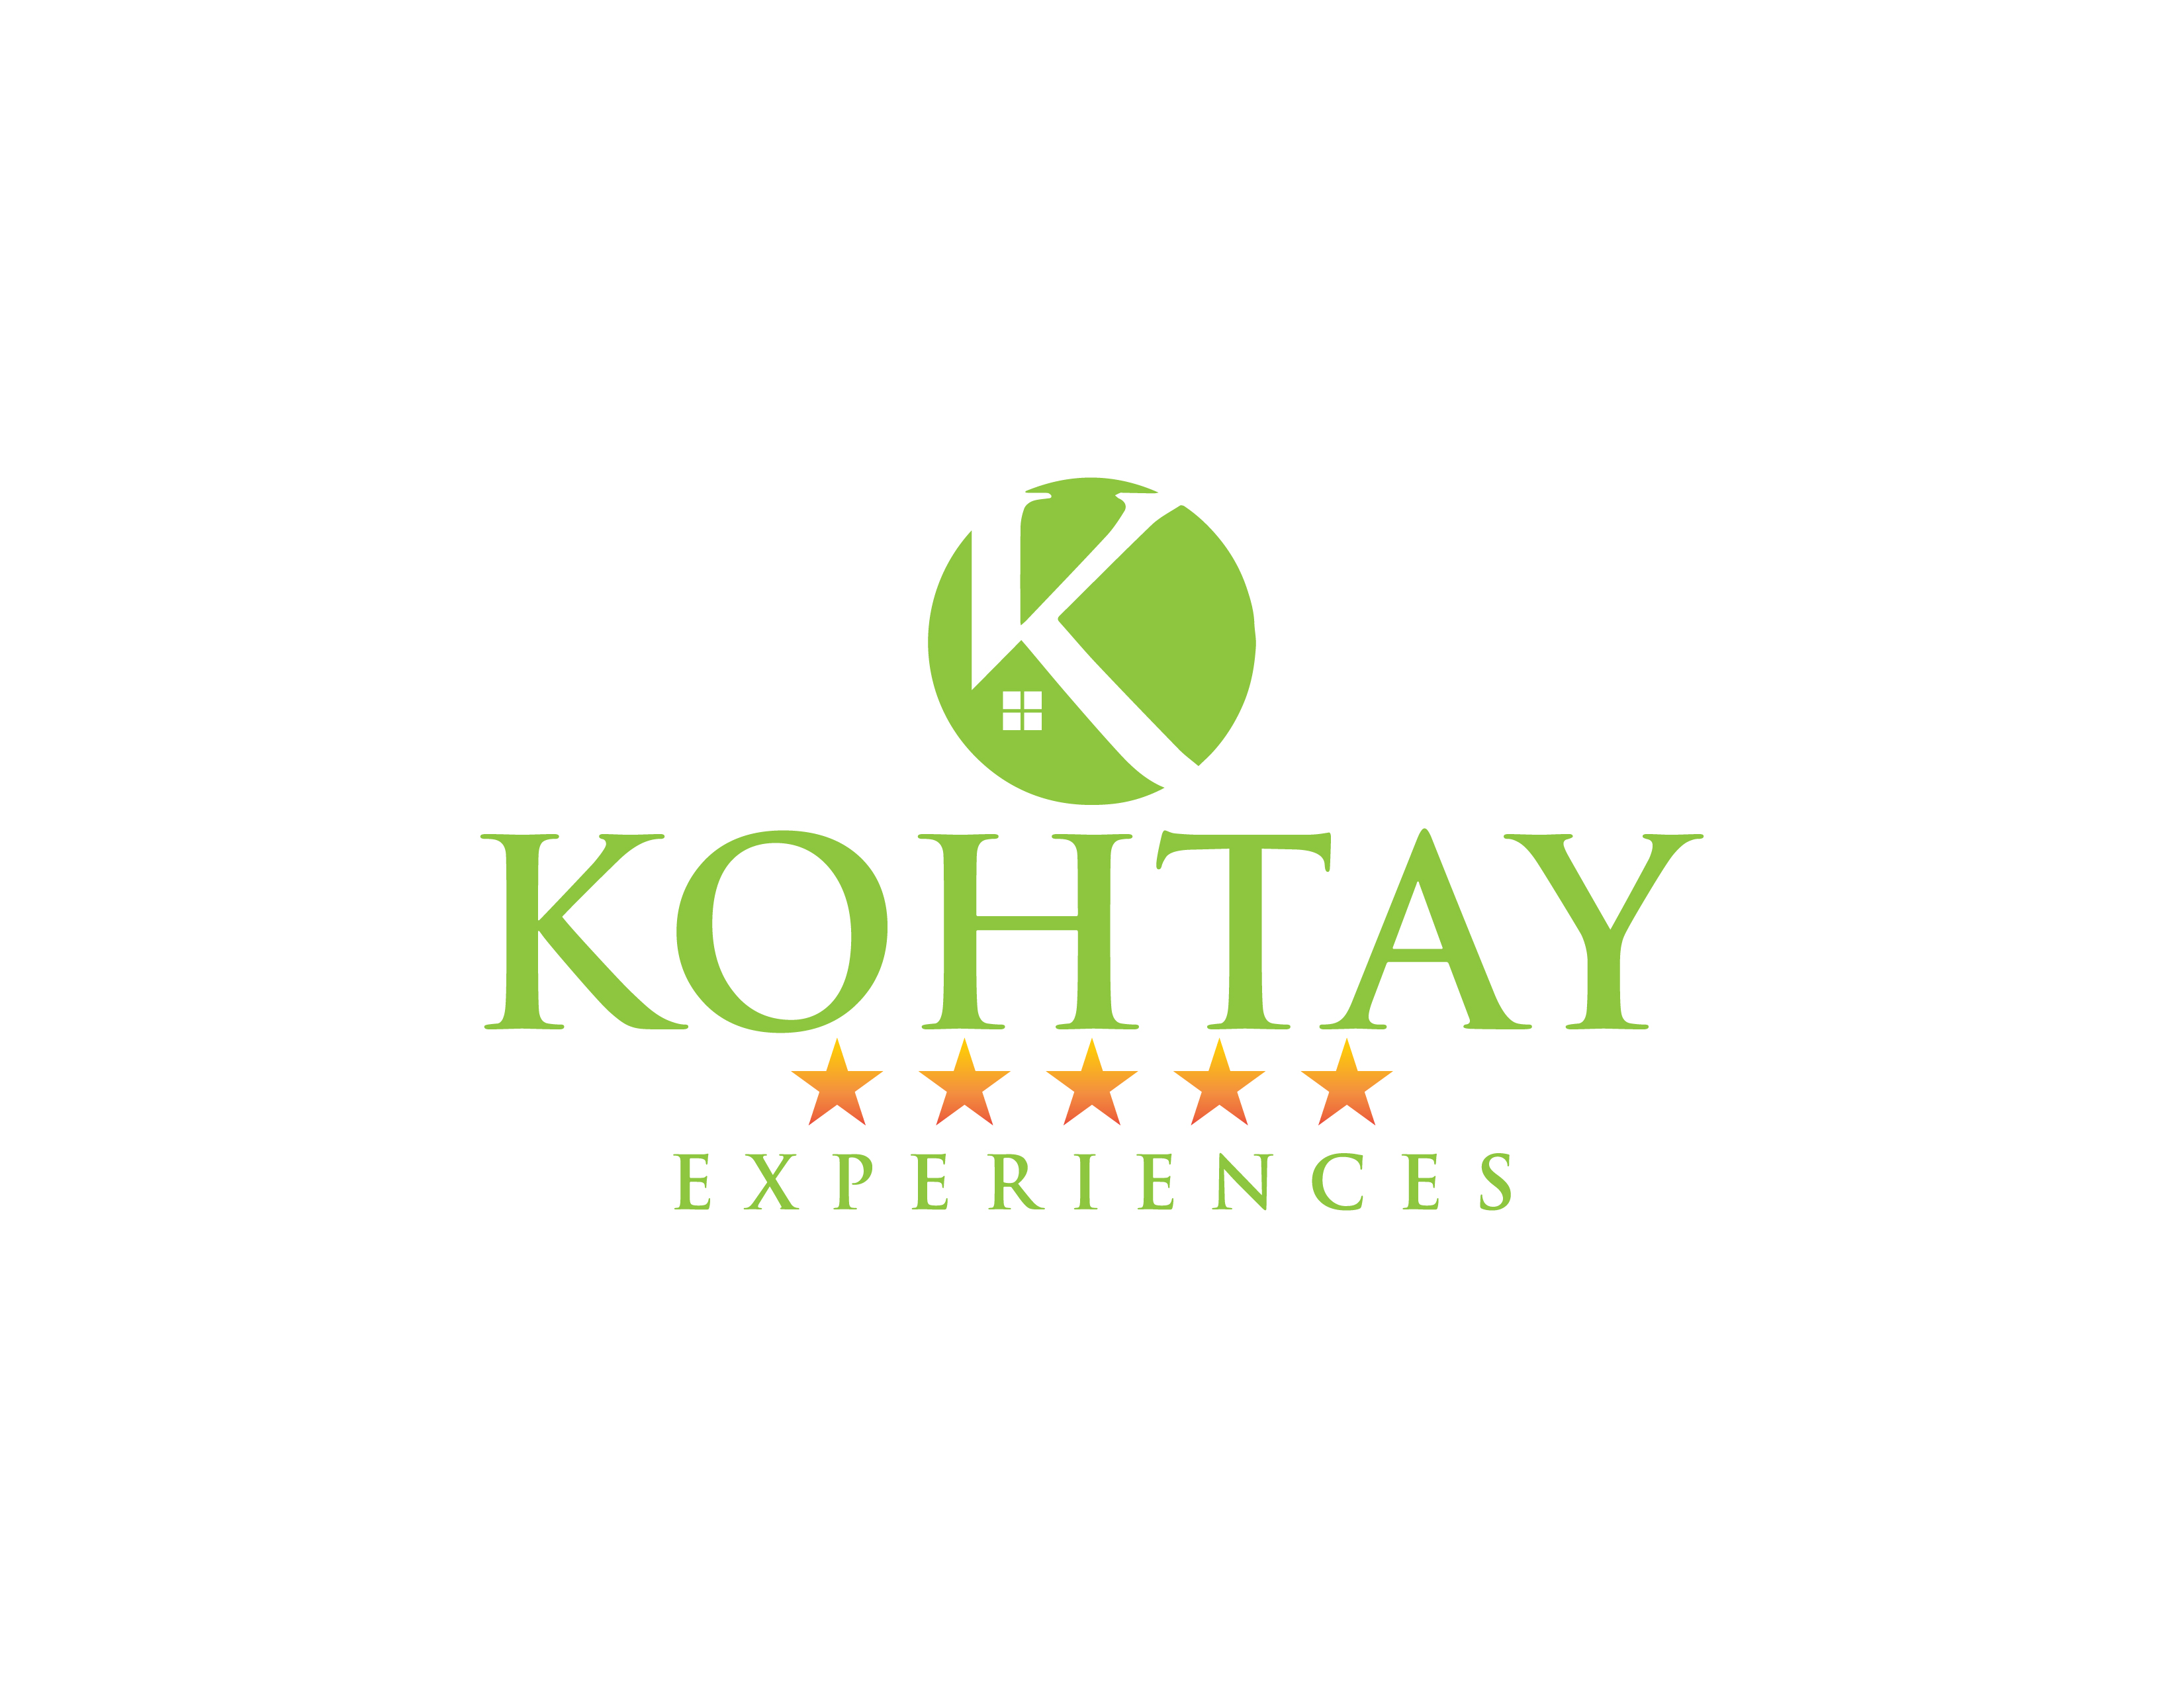 Kohtay 5 Star Experiences LLC Launches The 4 deal offer to Celebrate Their Launch in Richmond, VA